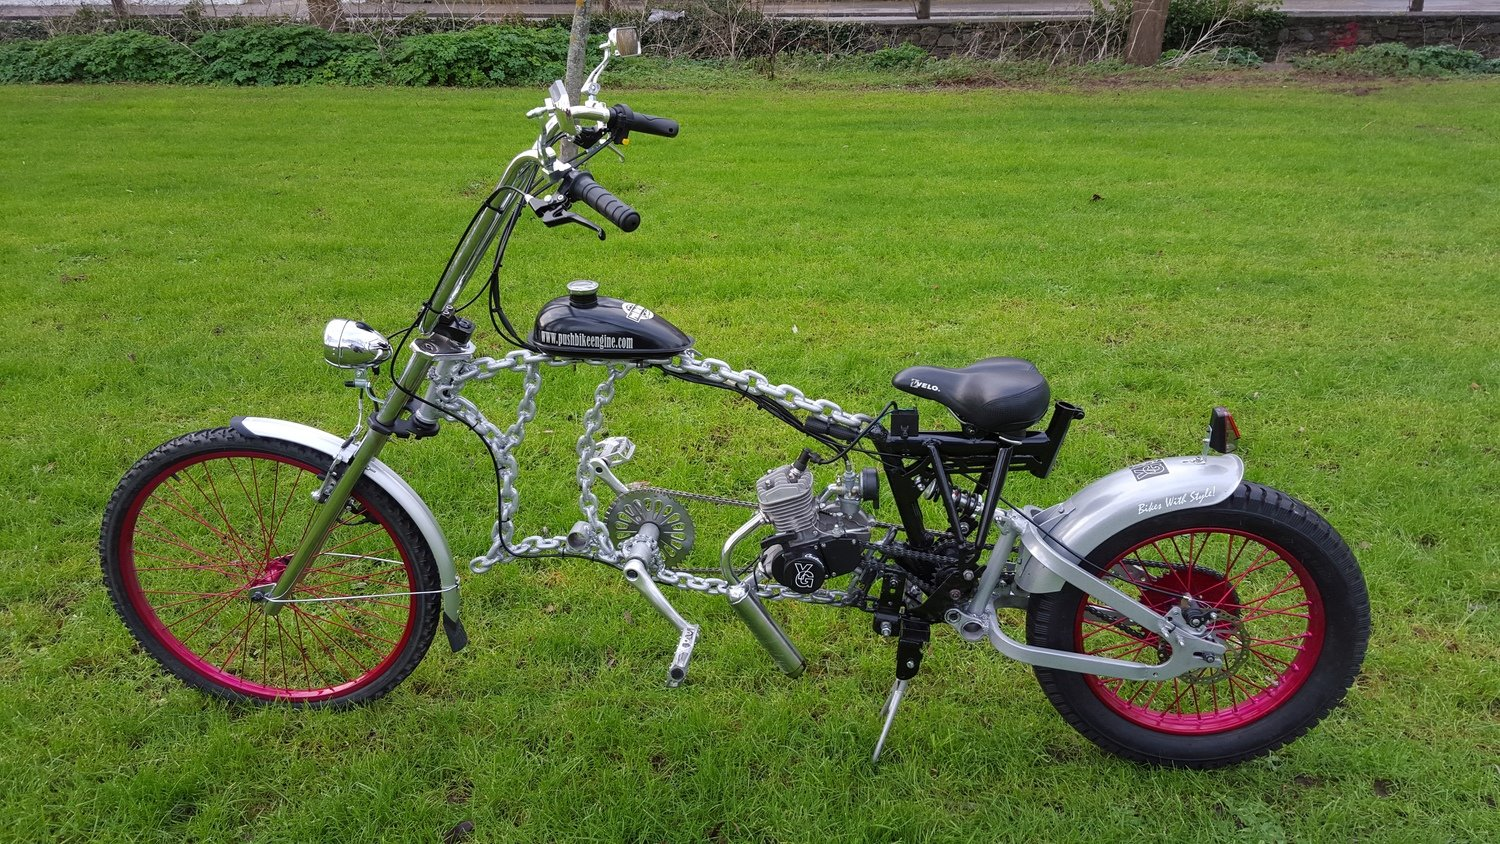 YG - Frankenstein Transformer Chain Bike